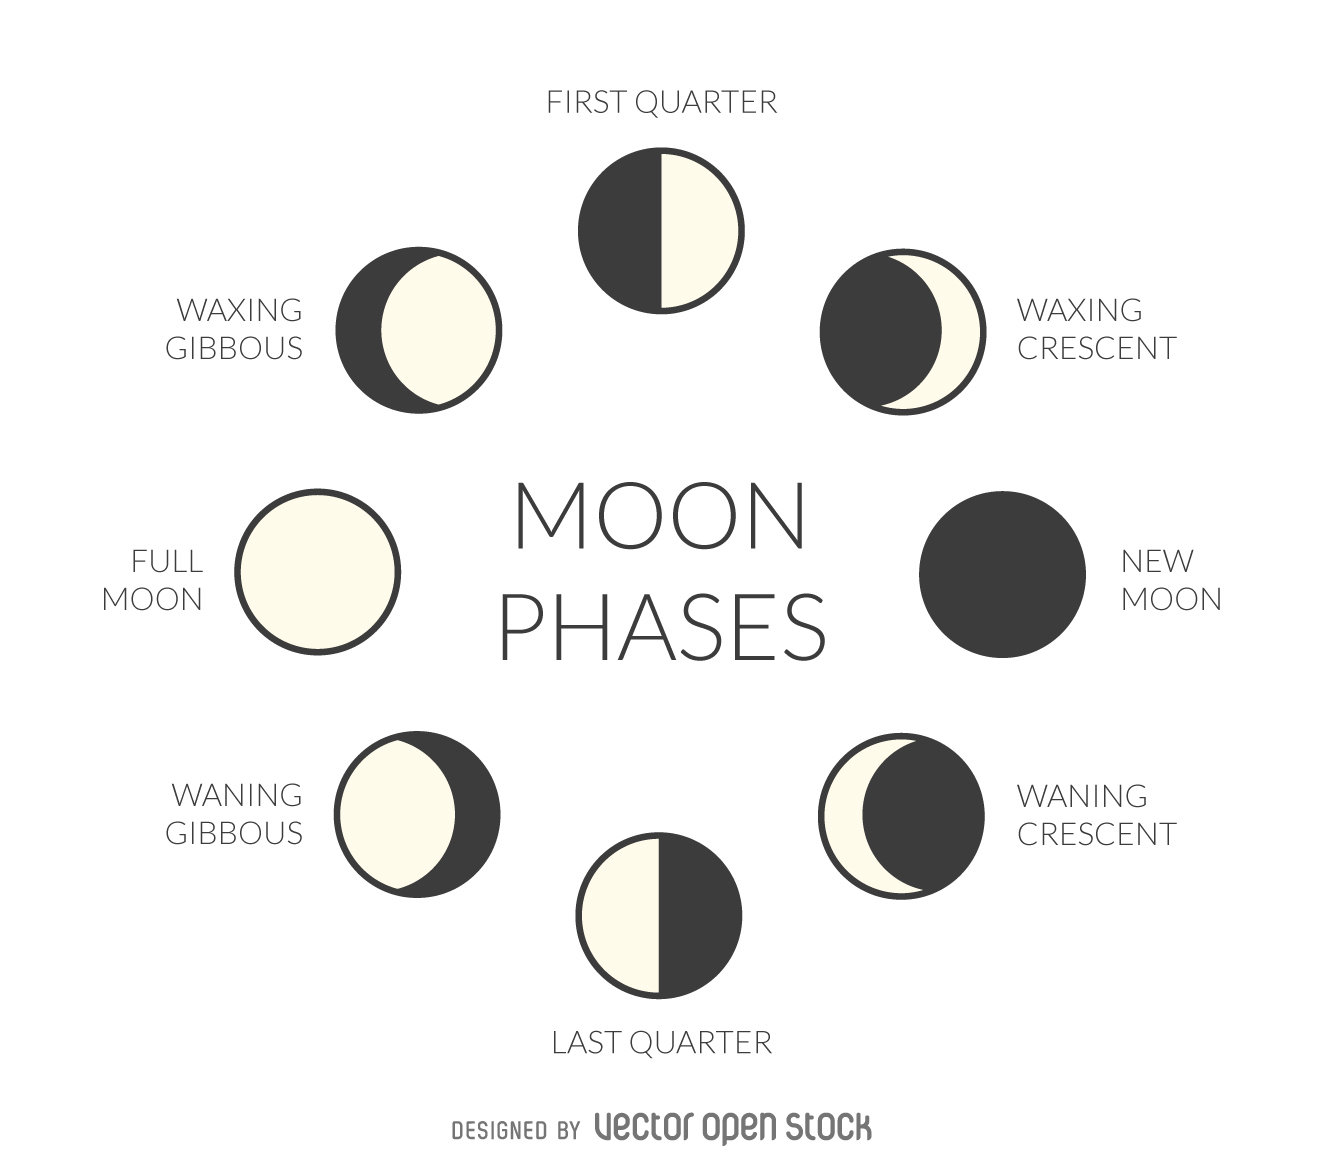 Phases Of The Moon Worksheets Printable   Printable Worksheets and  Activities for Teachers [ 1165 x 1324 Pixel ]